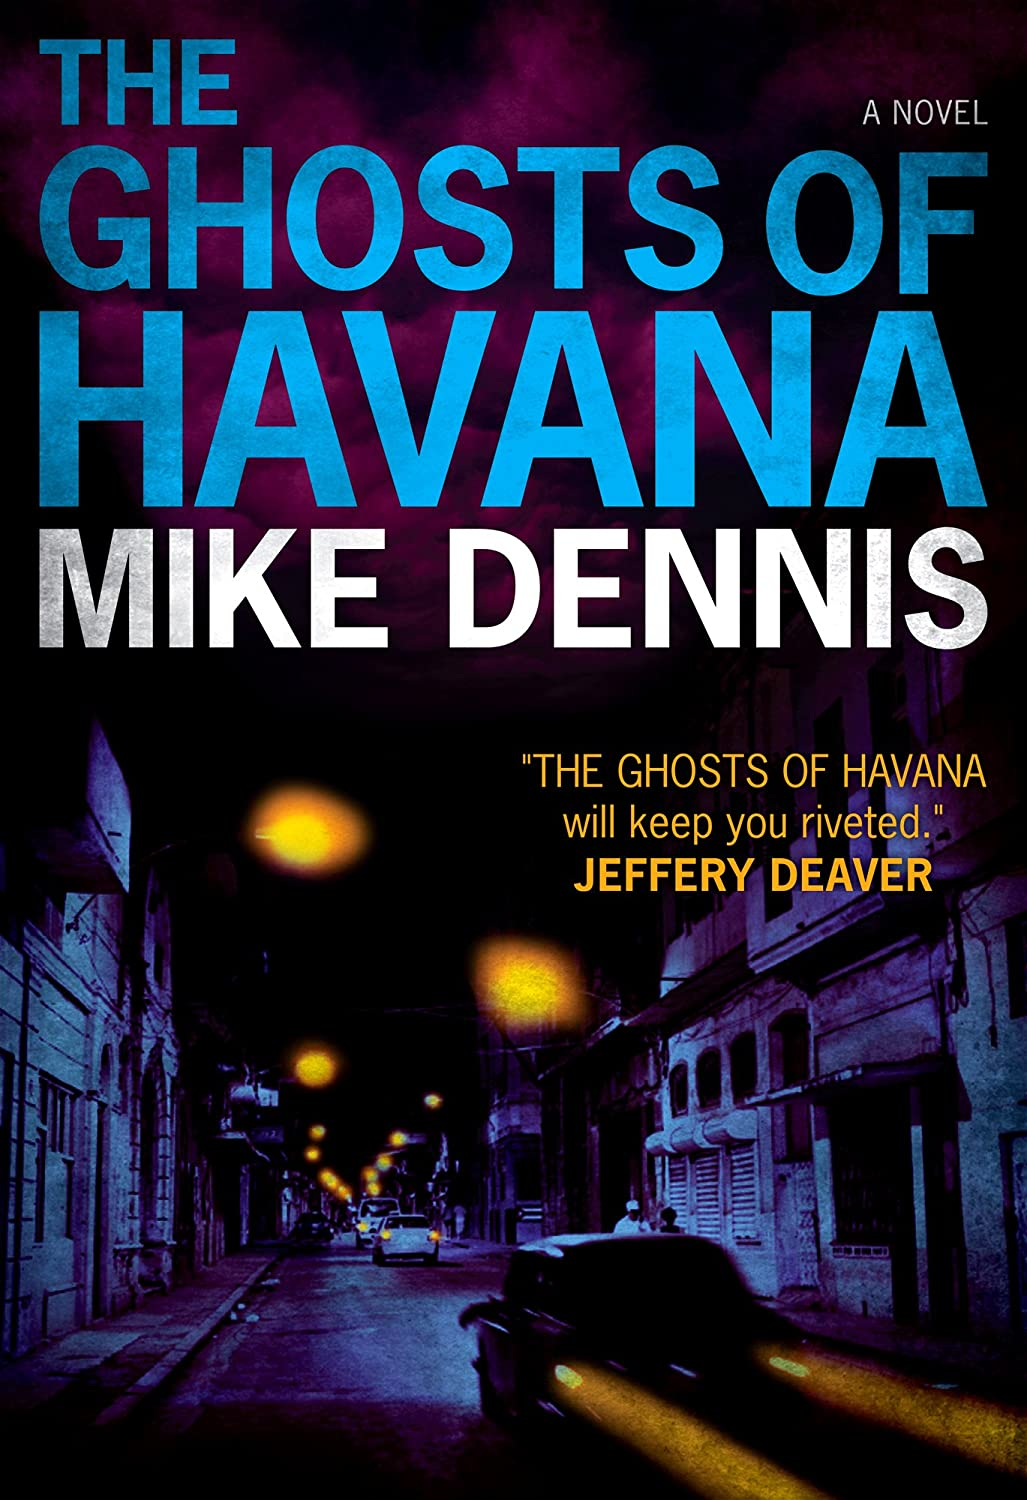 cover art for the novel, Ghosts of Havana, by Mike Dennis